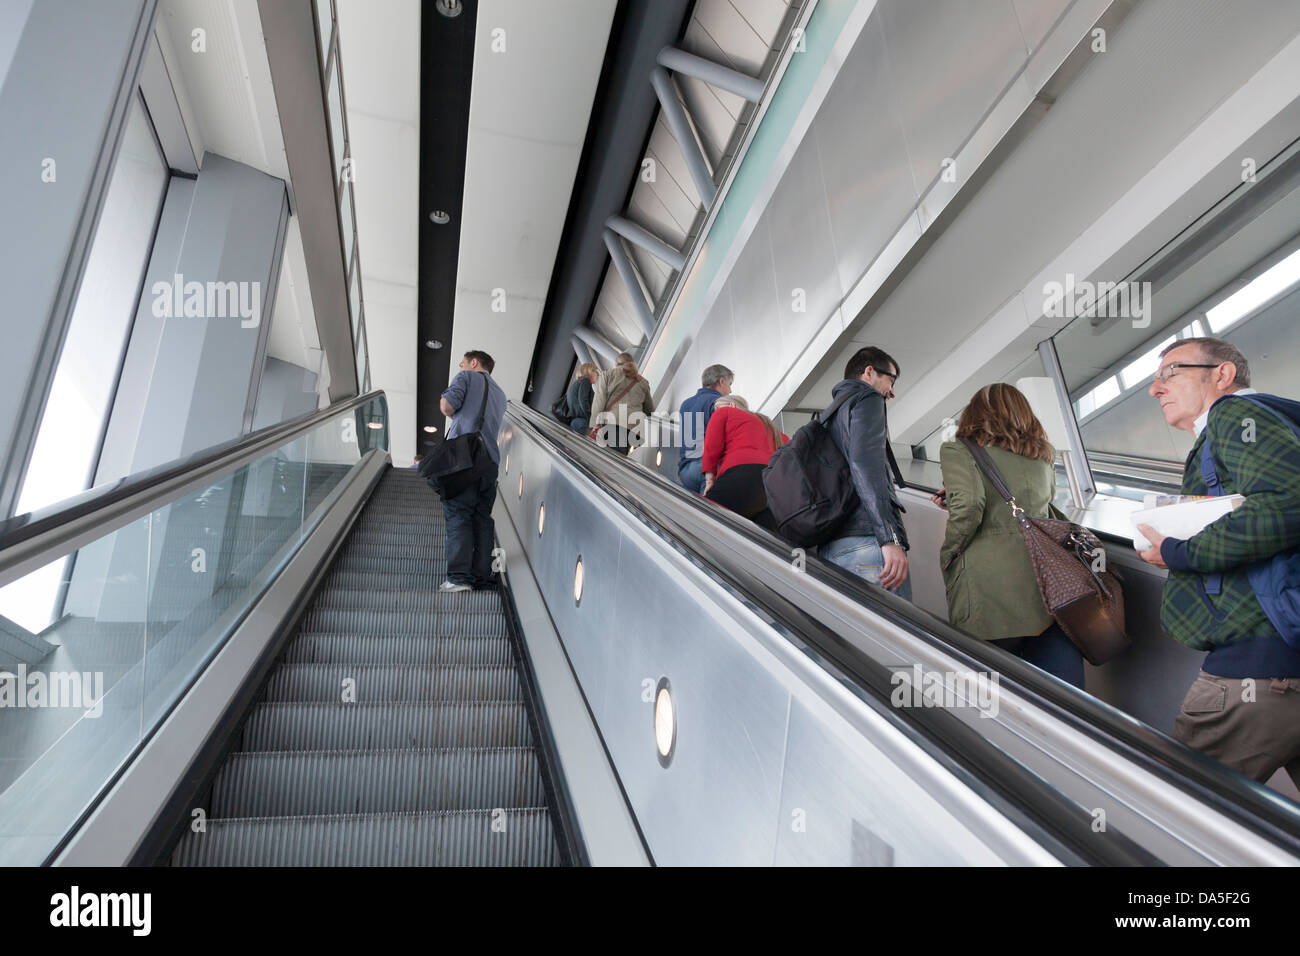 passengers on up escalator at airport - Stock Image